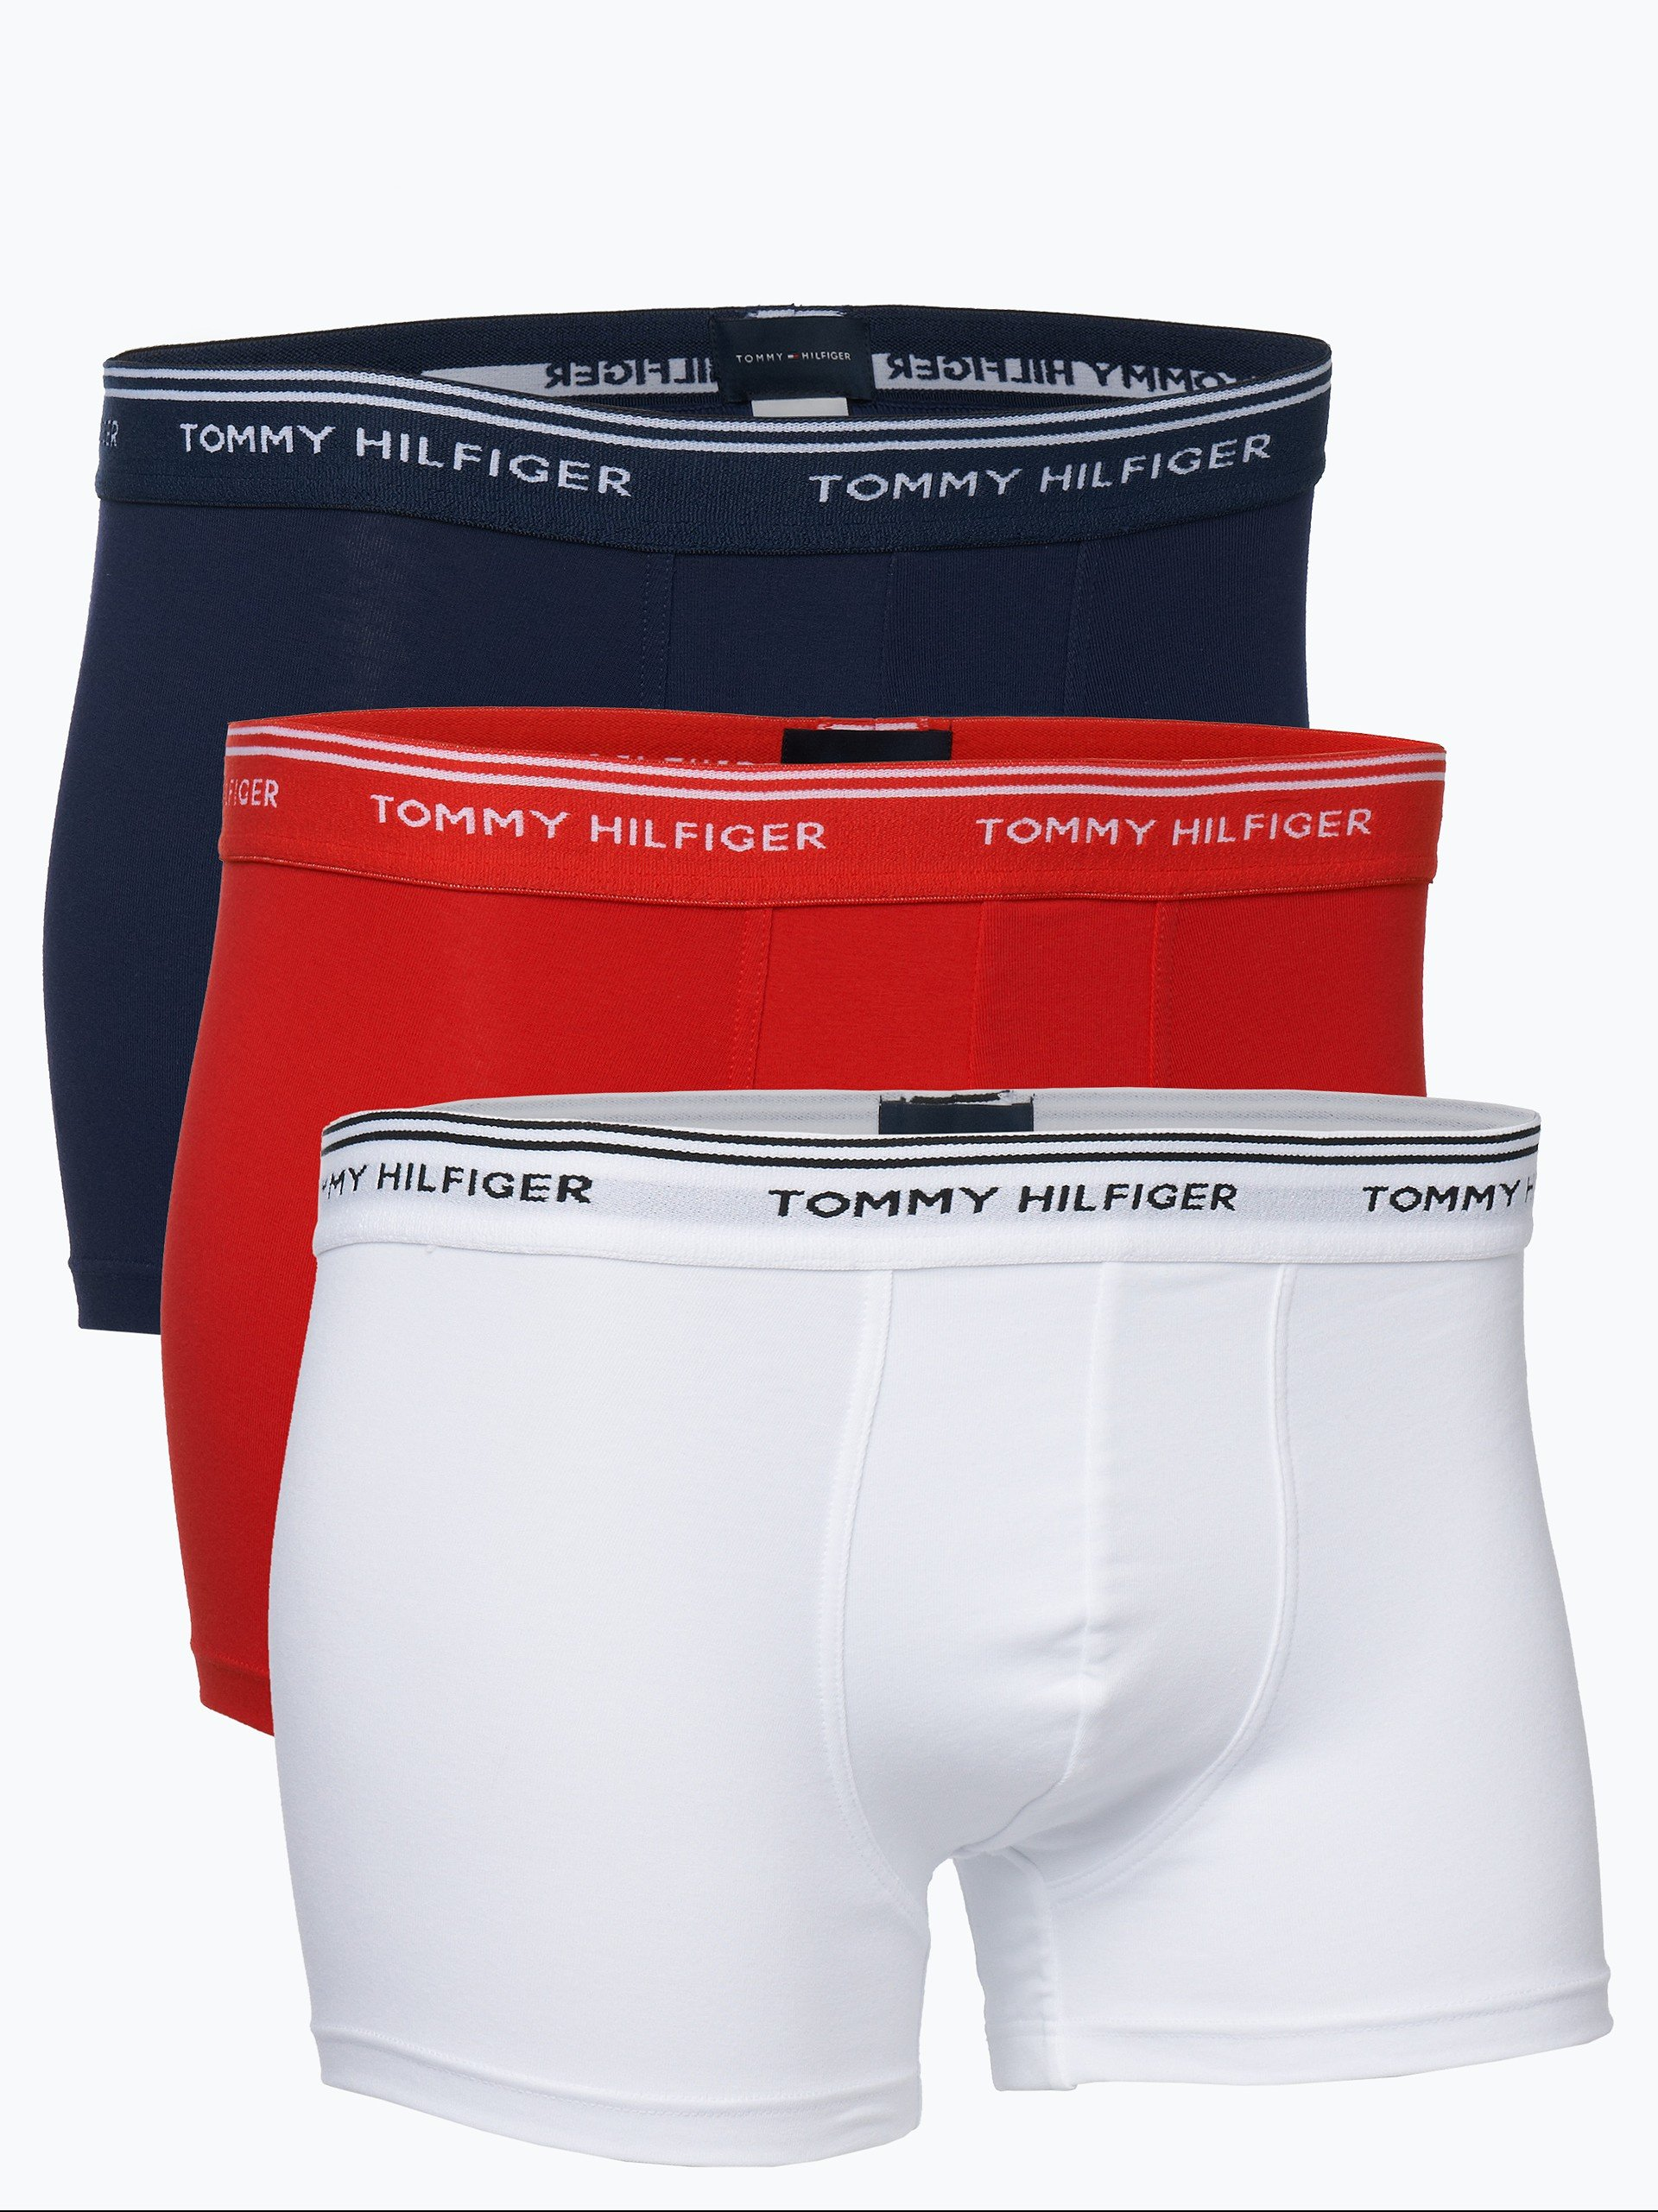 Tommy Hilfiger Herren Pants - Stretch Cotton im 3er-Pack